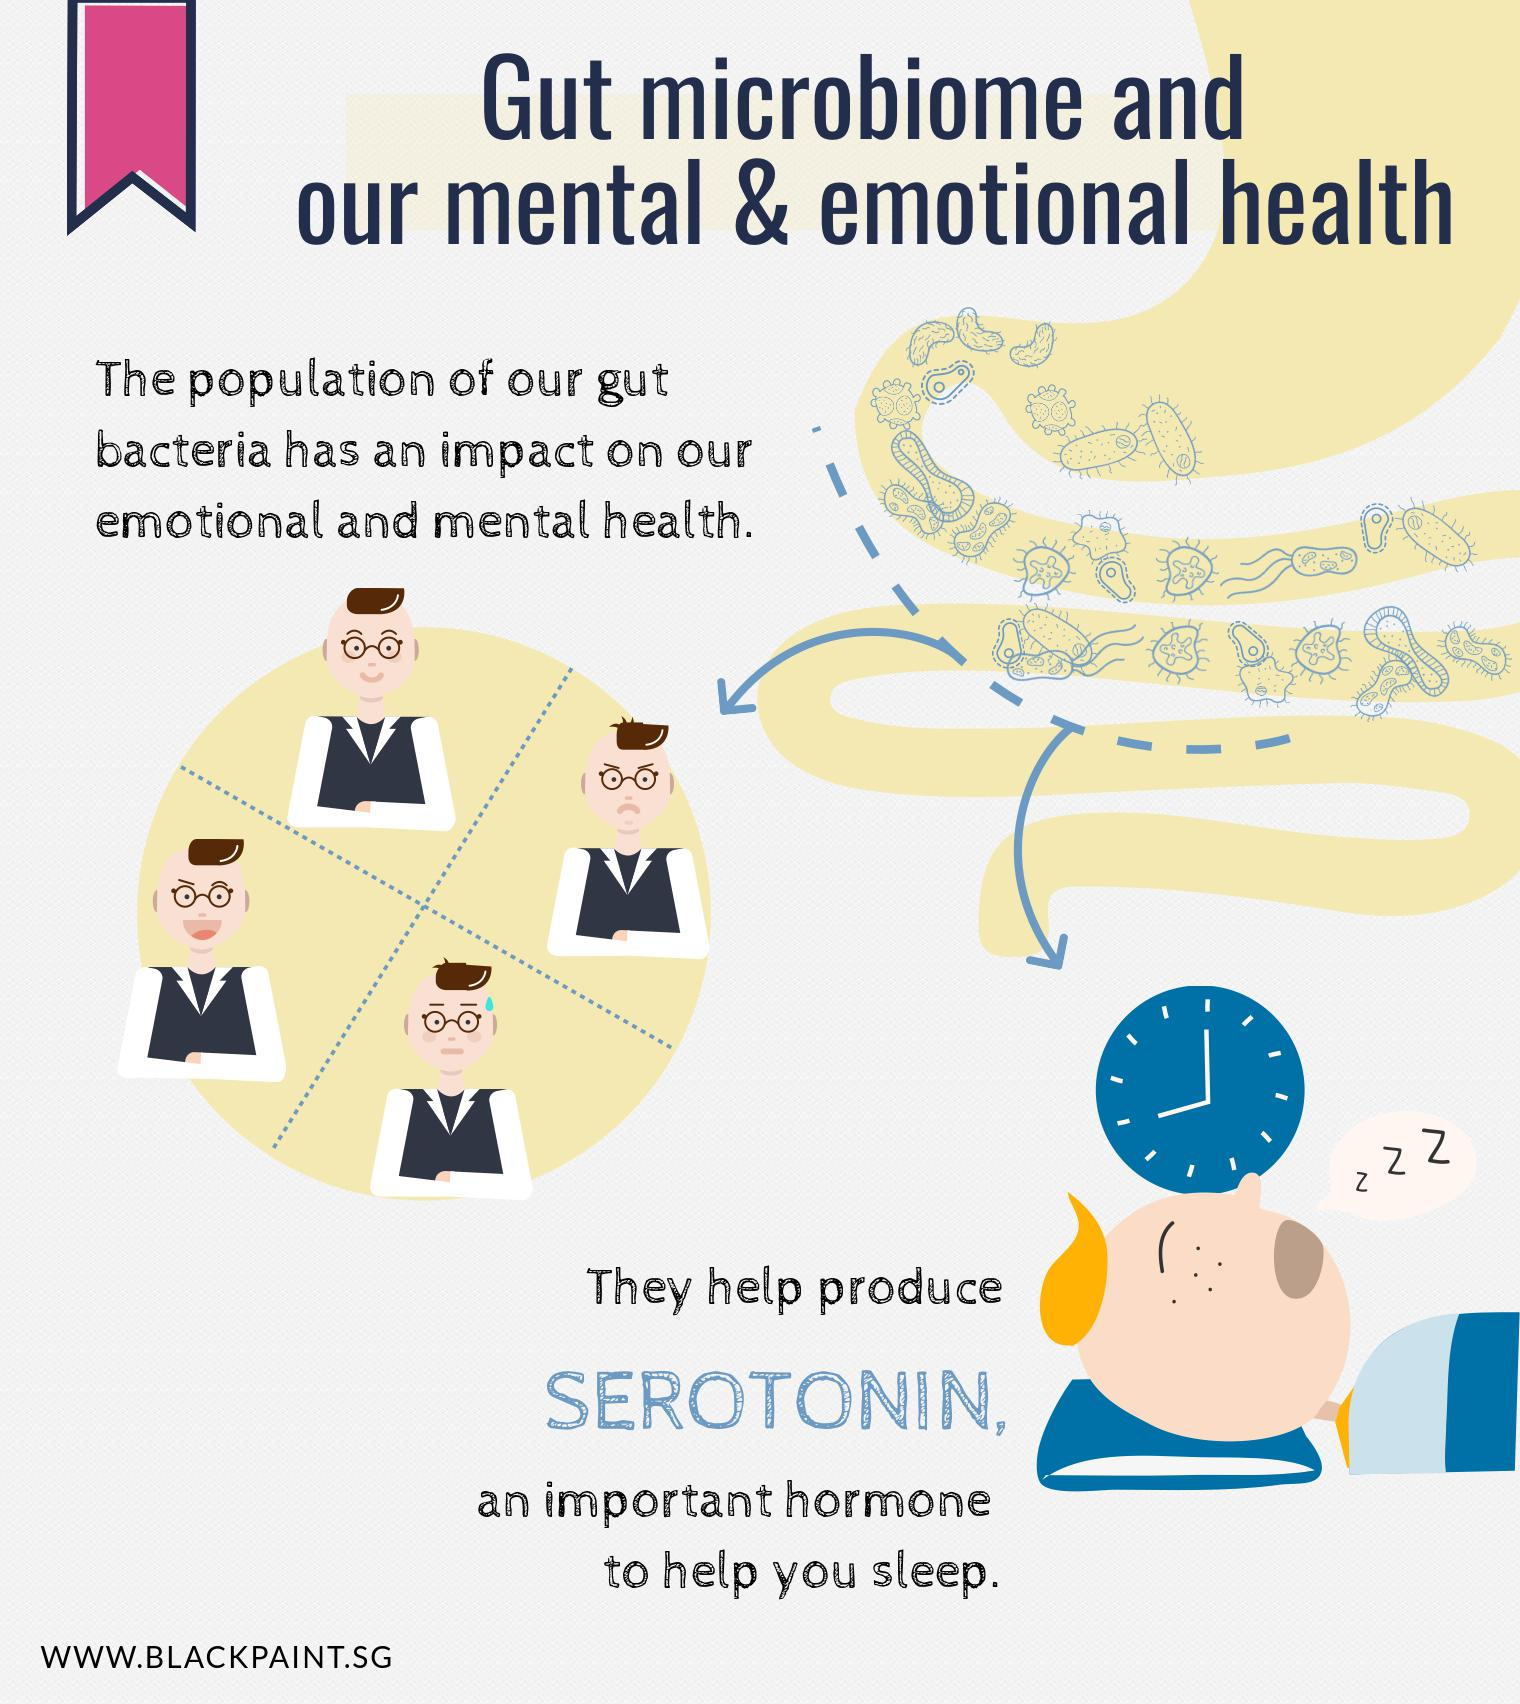 illustration of gut microbiome and our mental & emotional health